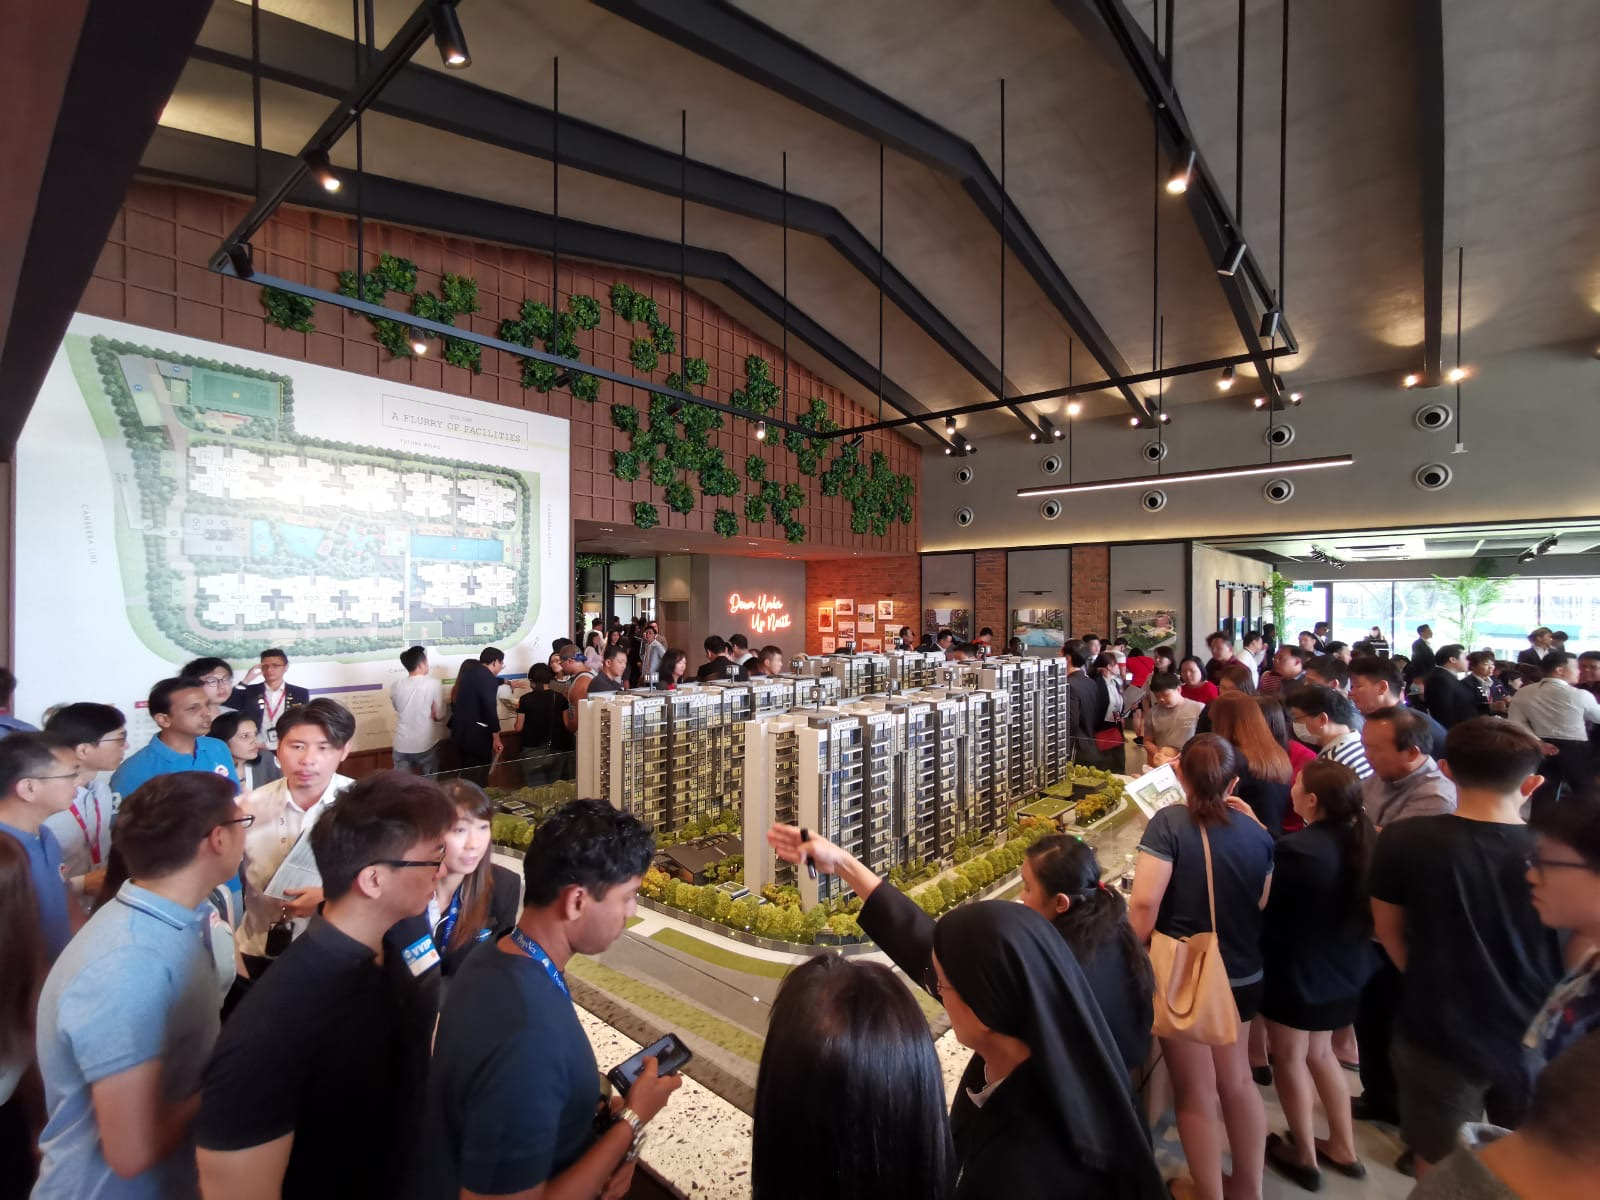 The crowd at Parc Canberra showflat on the first weekend of public preview (Photo: Albert Chua/EdgeProp Singapore) - EDGEPROP SINGAPORE